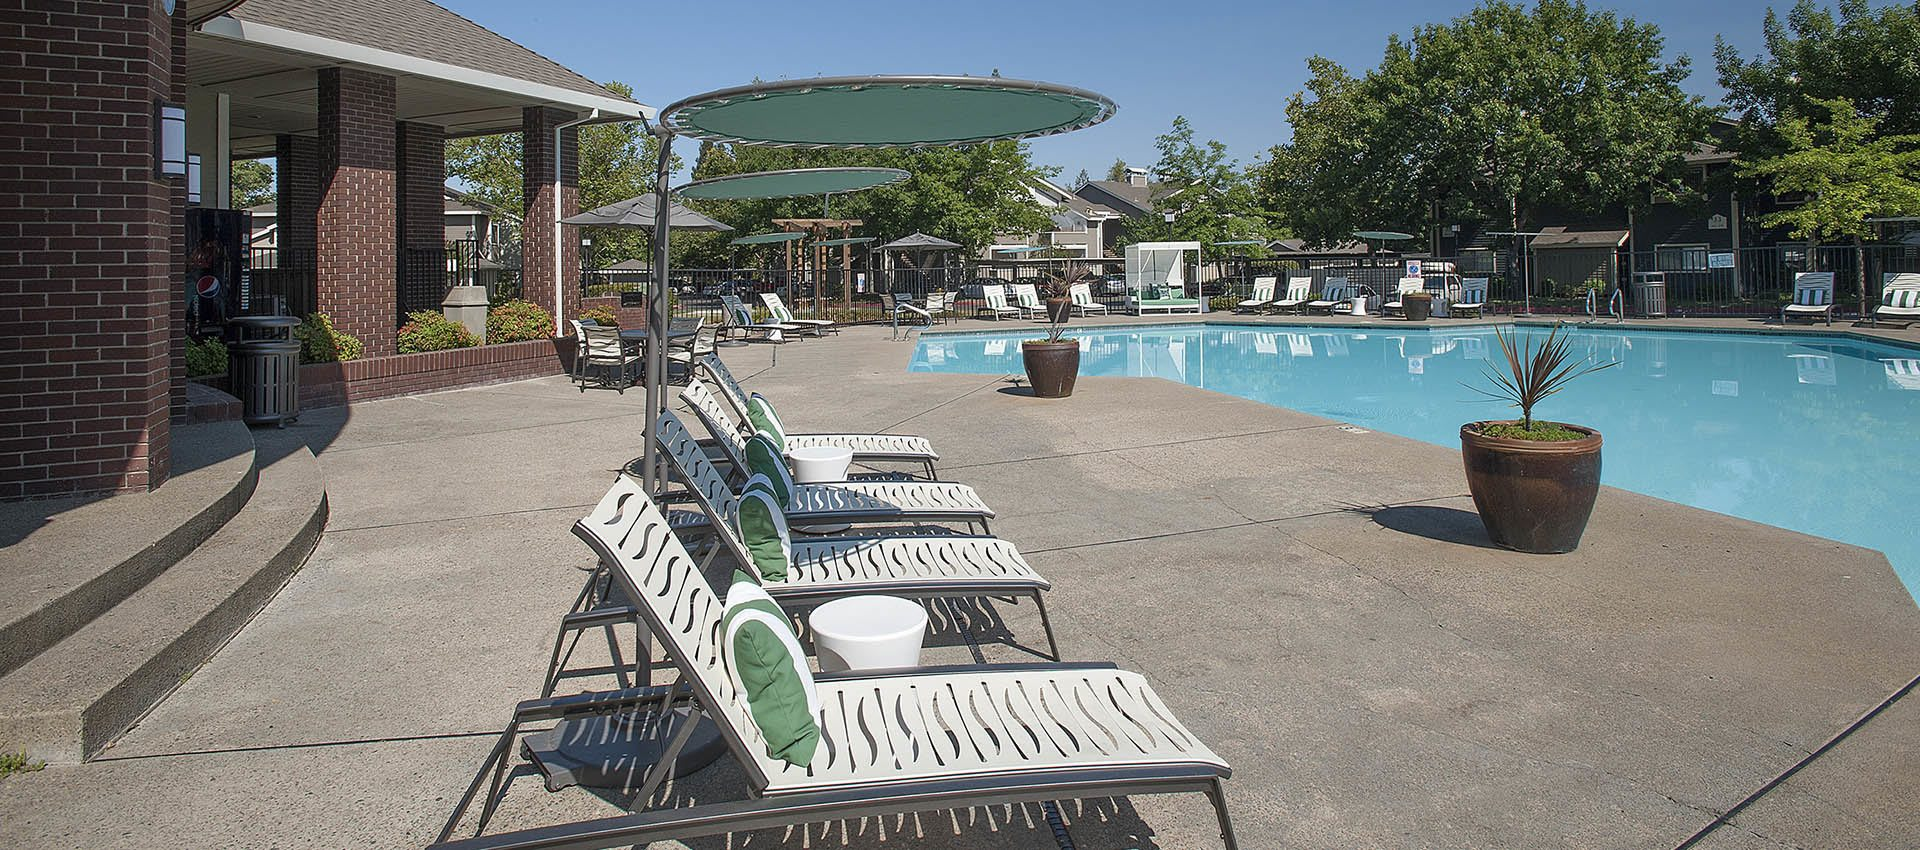 Sunchairs Near Swimming Pool at Deer Valley Apartment Homes in Roseville, California